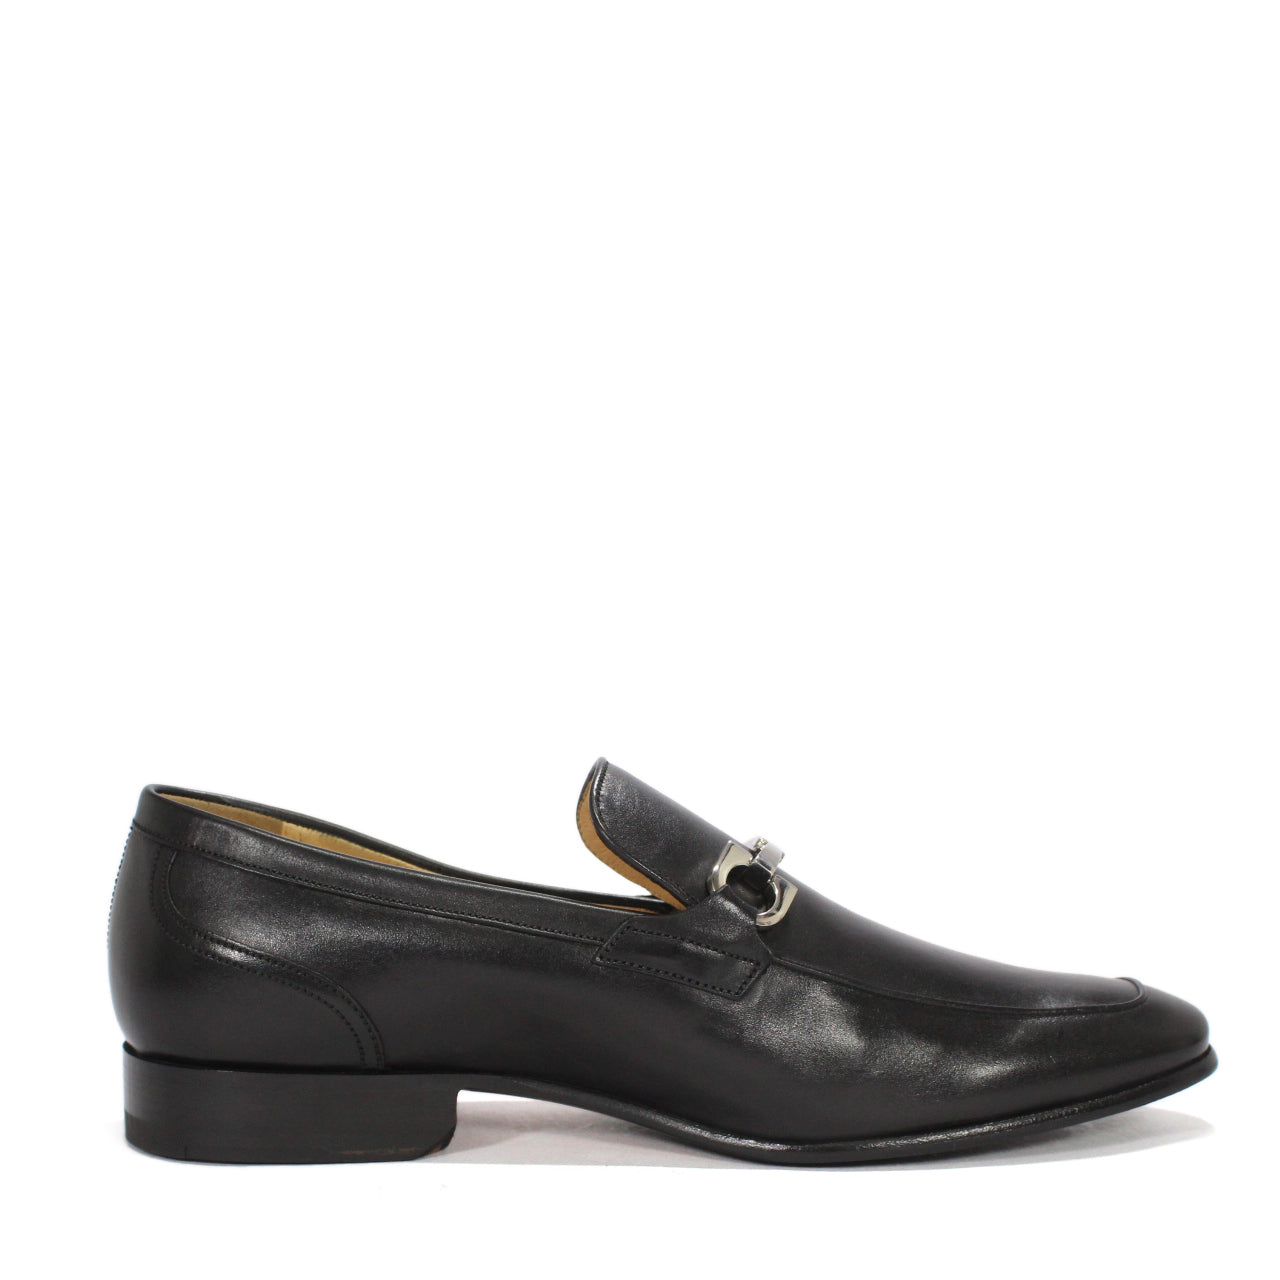 Bally Luniz Men's Rounded-Square Toe Bit Loafers